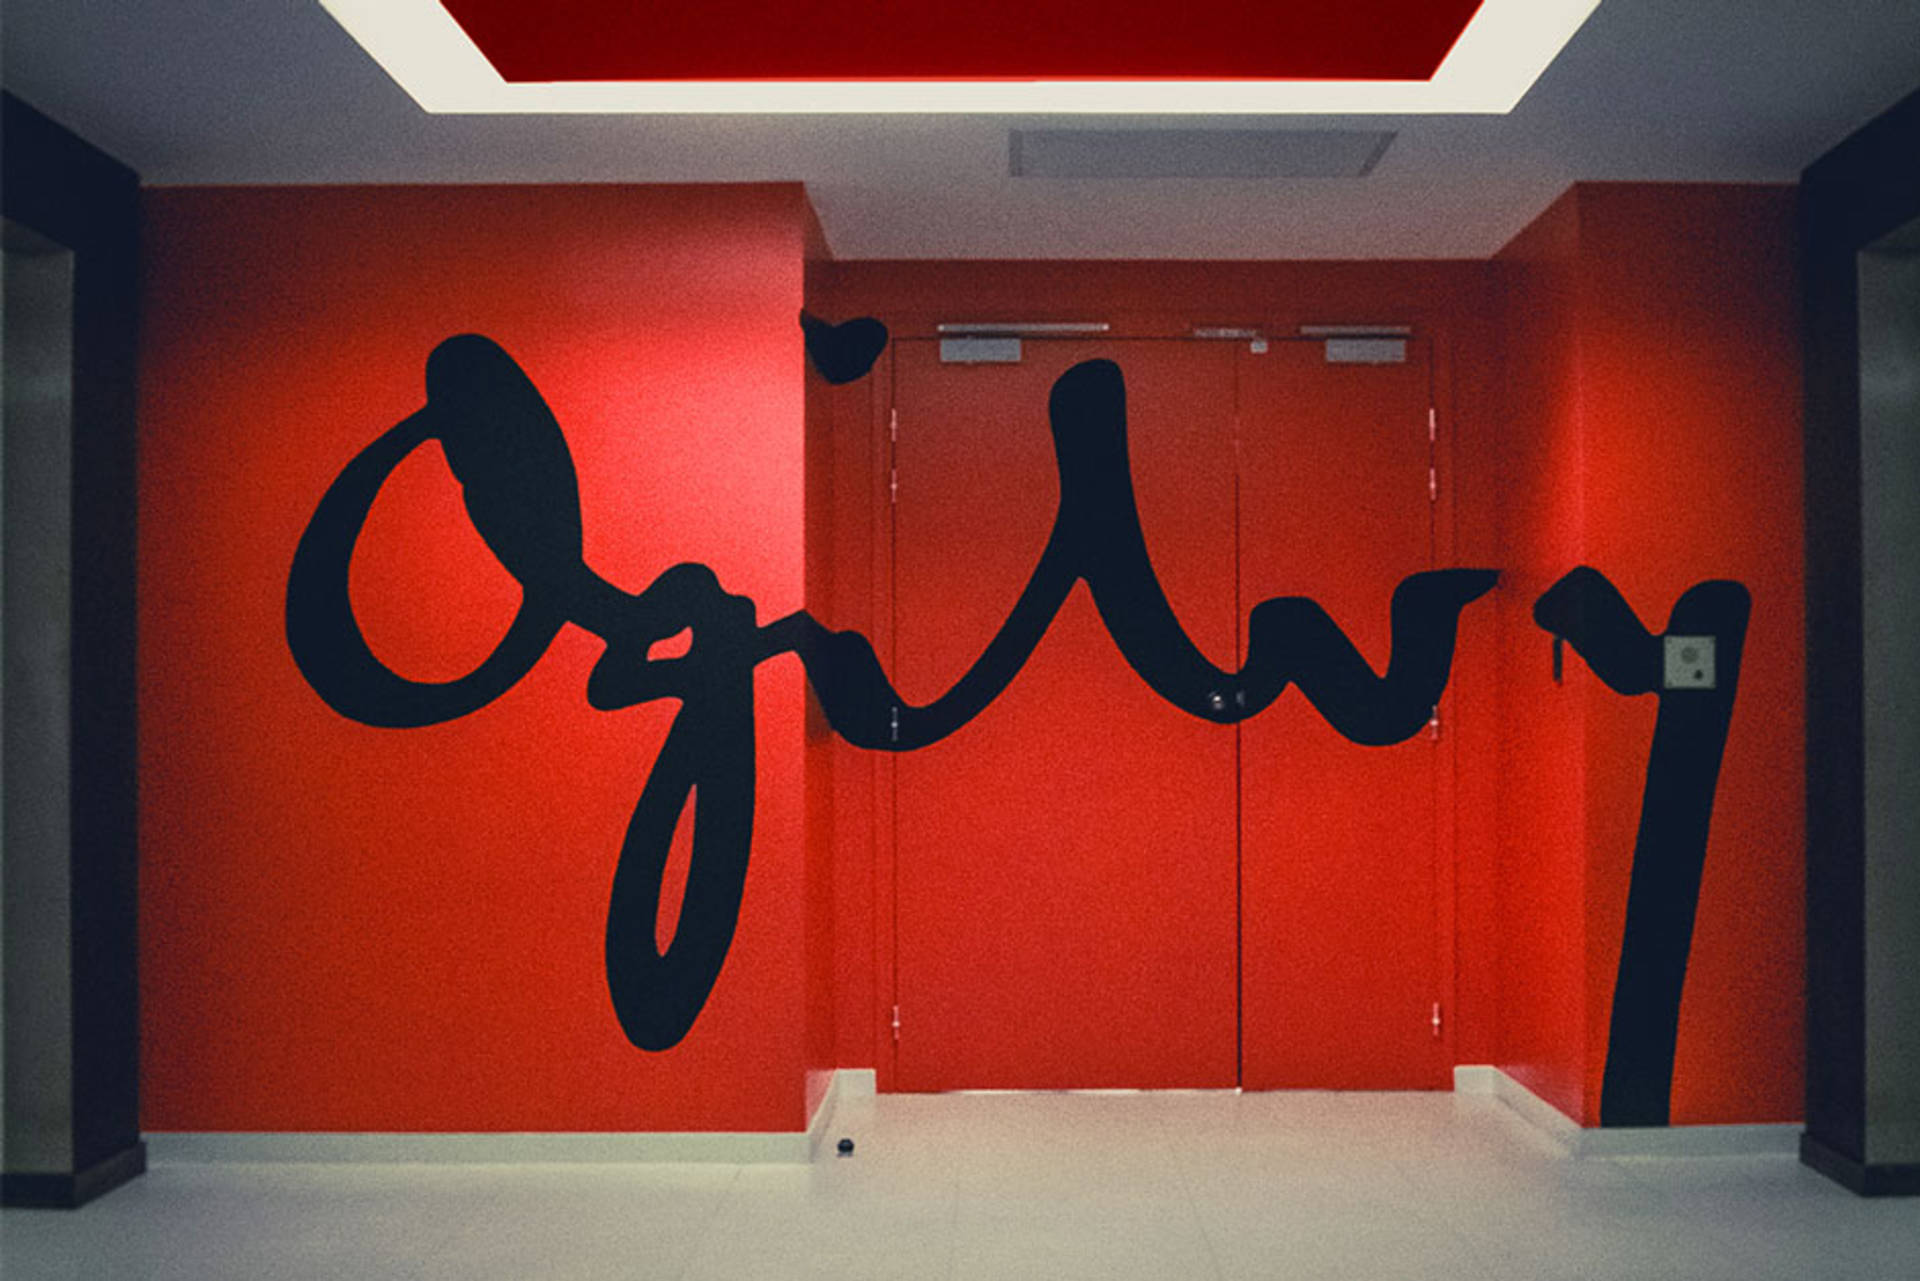 offices ogilvy. New Office For Ogilvy \u0026 Mather In Paris By Stéphane Malka Architecture Offices Ogilvy R